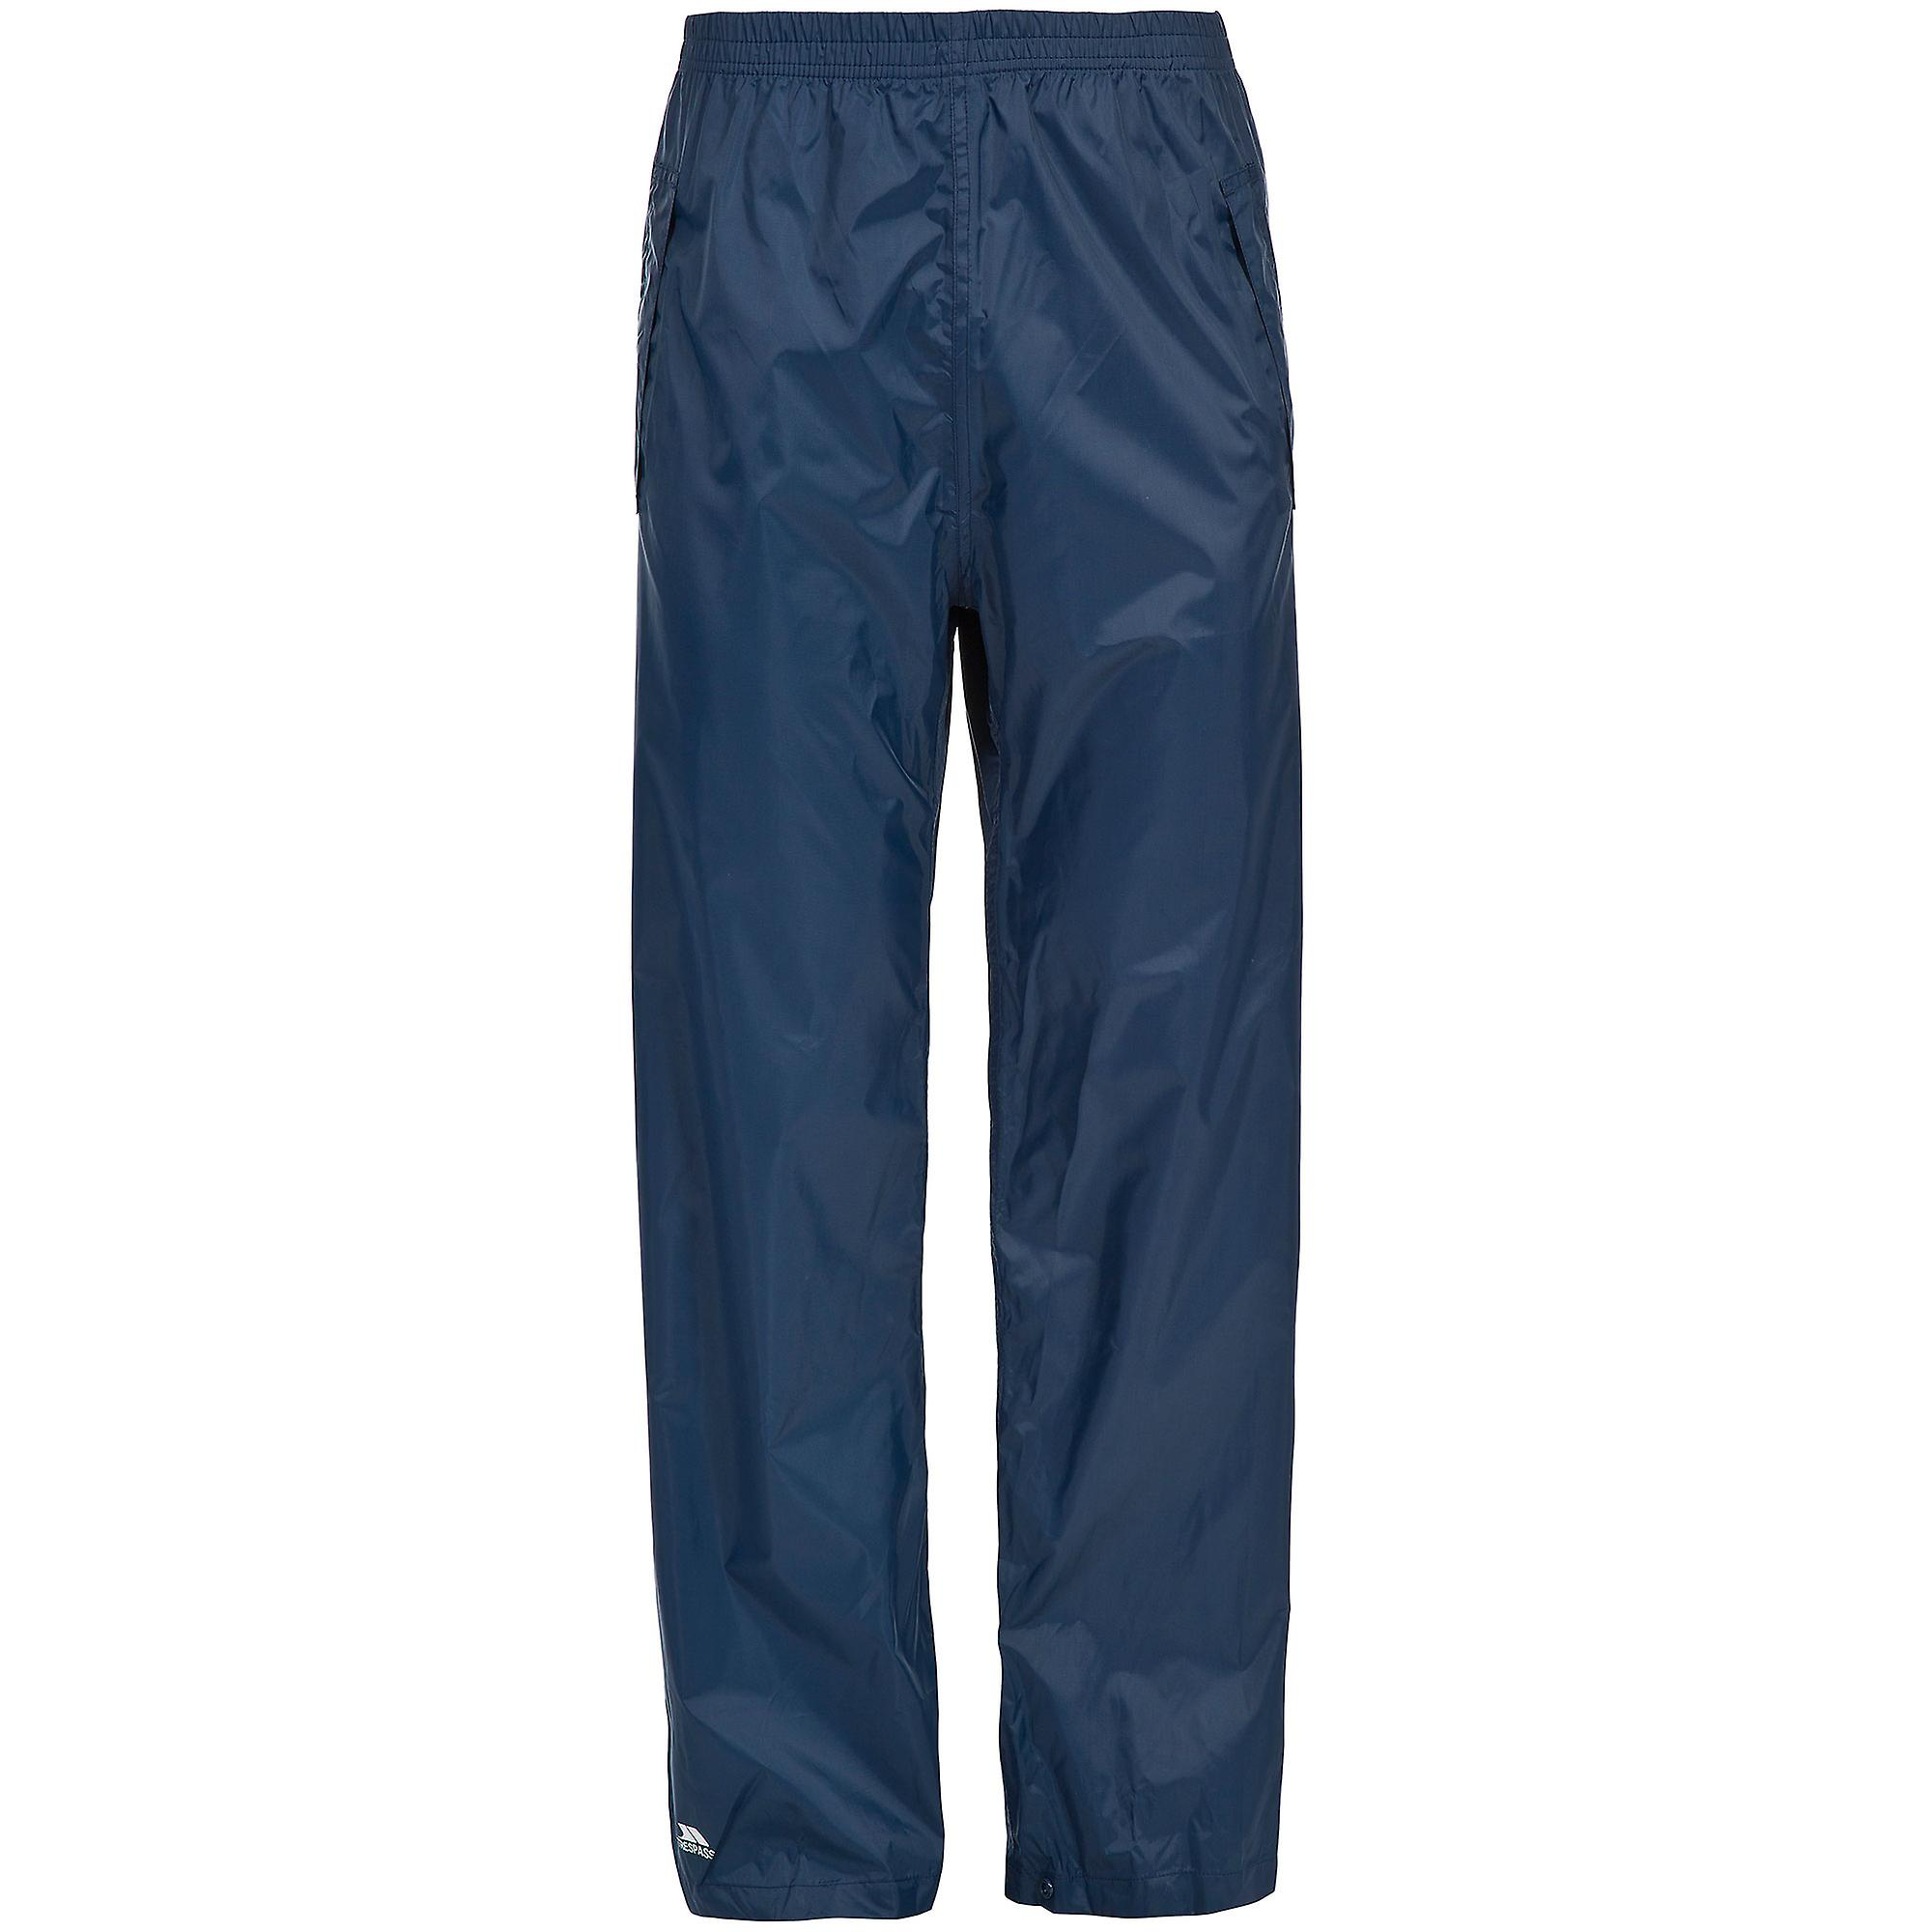 Trespass Mens Packup Overtrousers